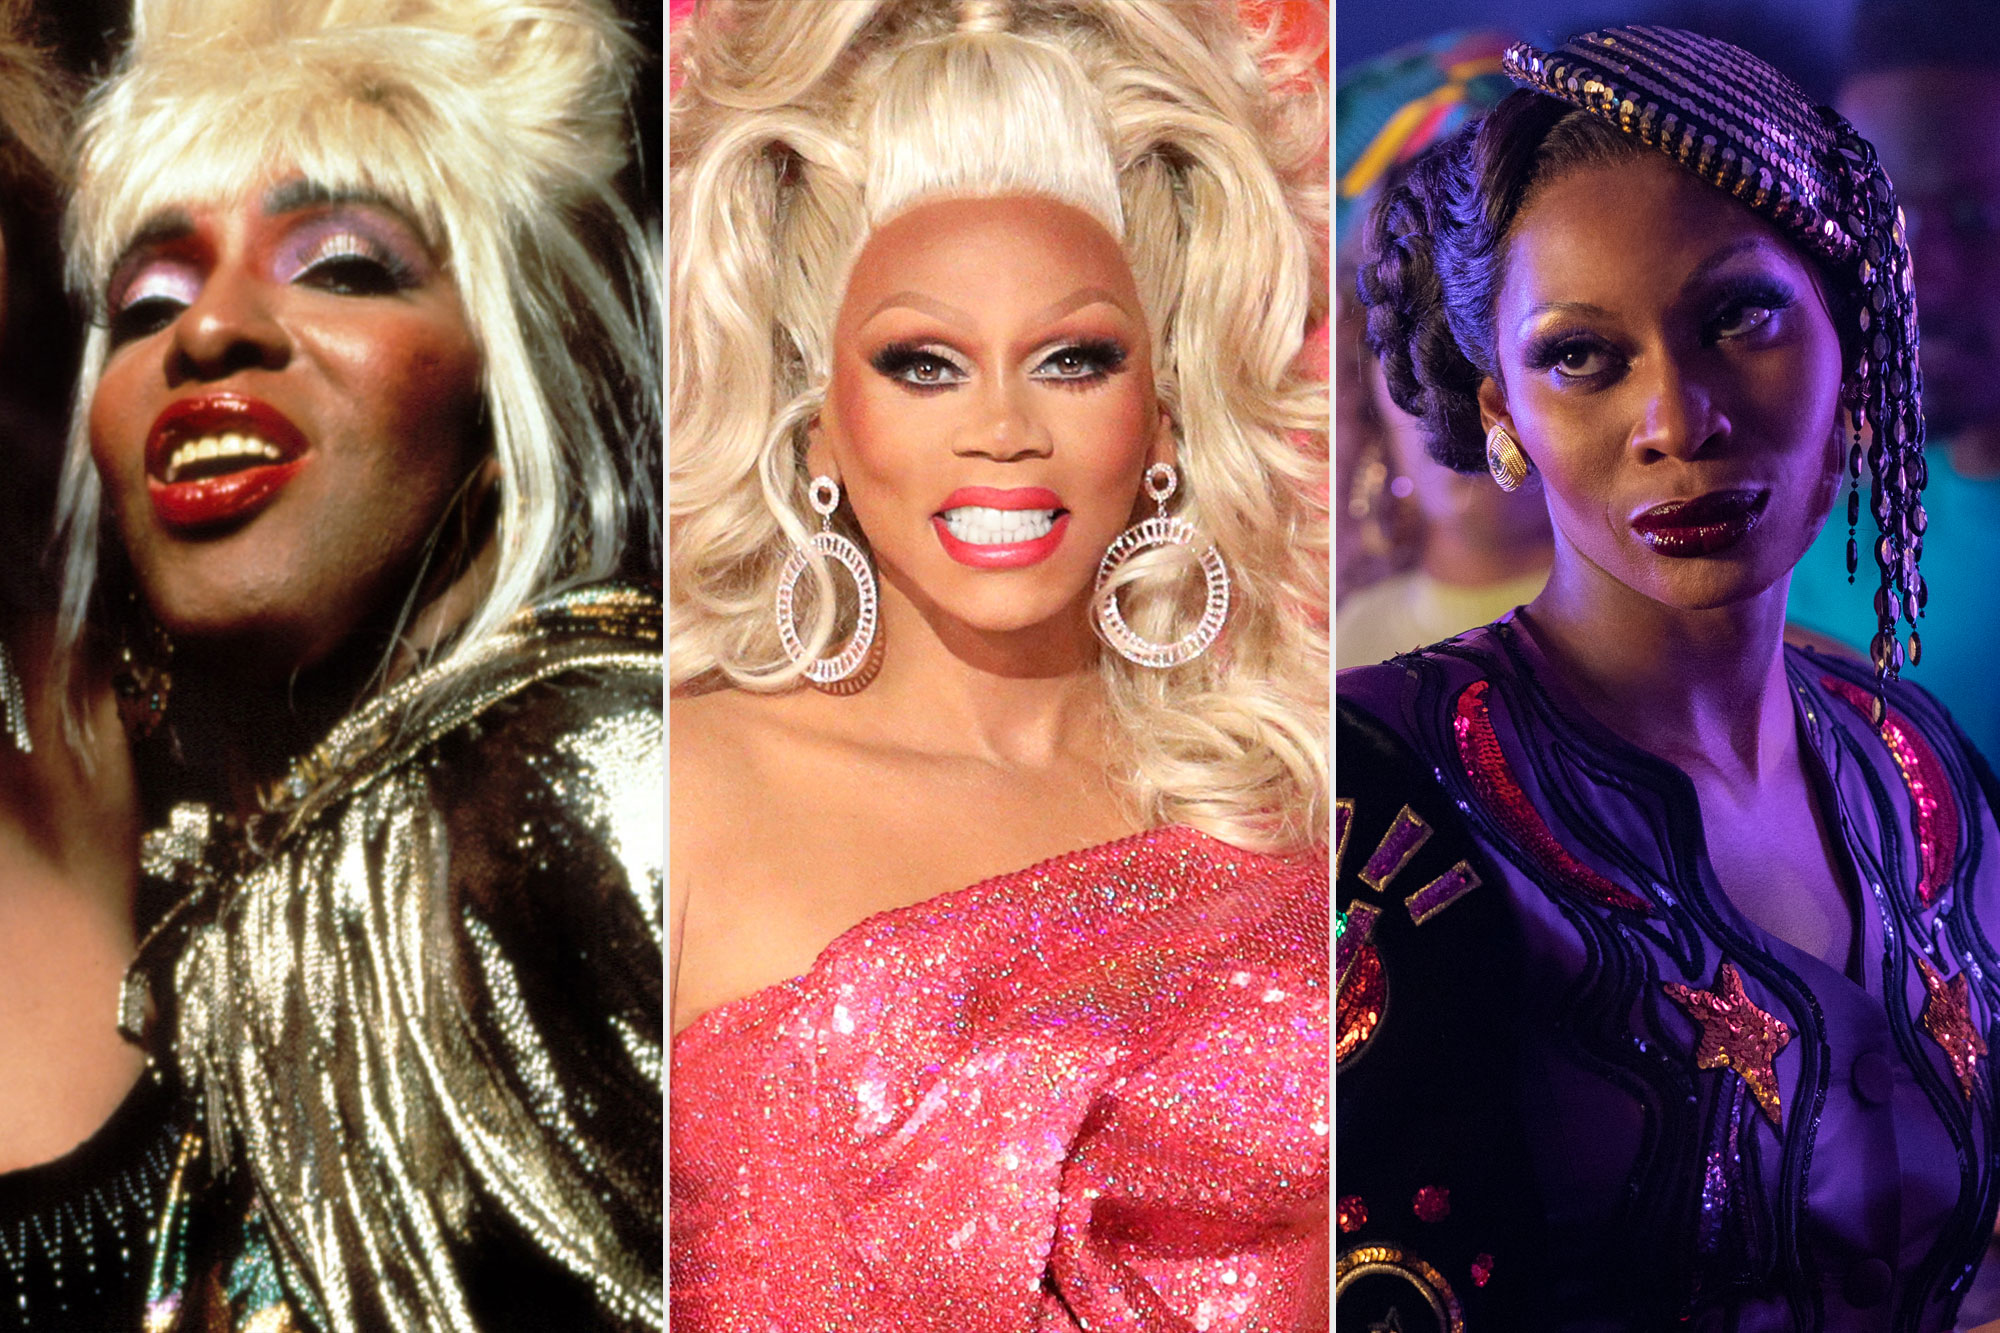 Paris is Burning; RuPaul's Drag Race; Pose